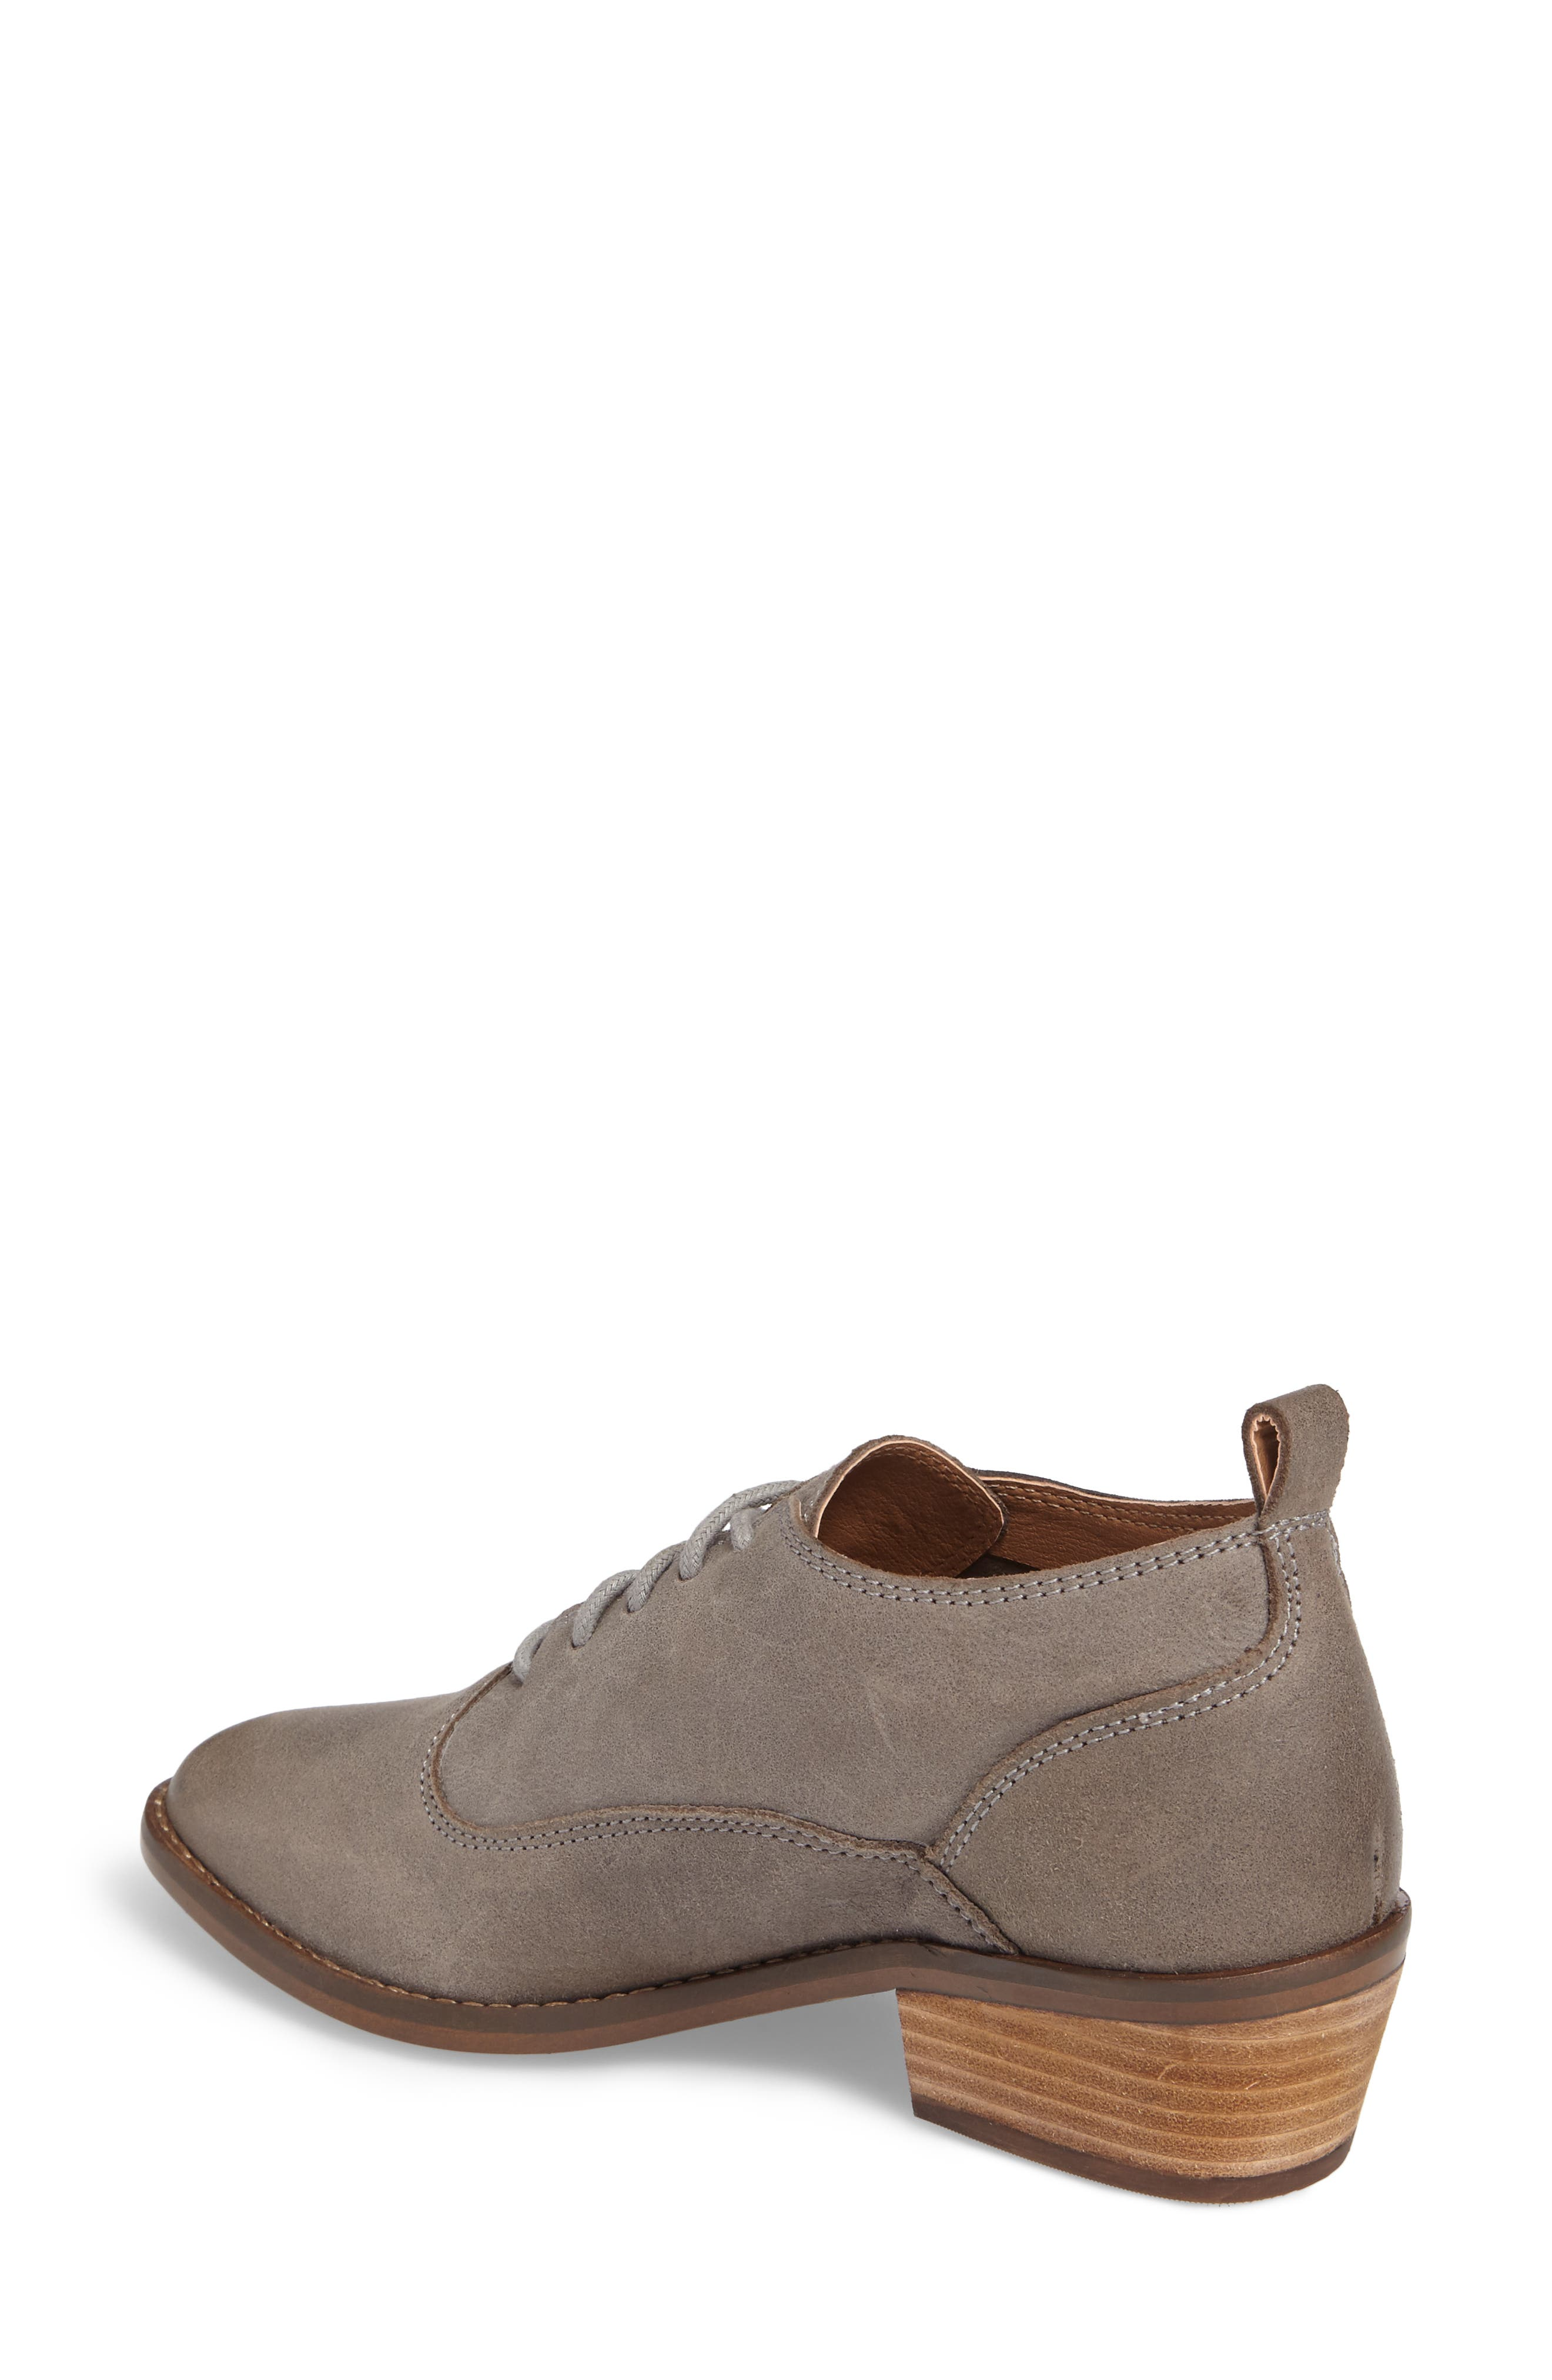 Alternate Image 2  - Lucky Brand Fantine Lace-Up Bootie (Women)